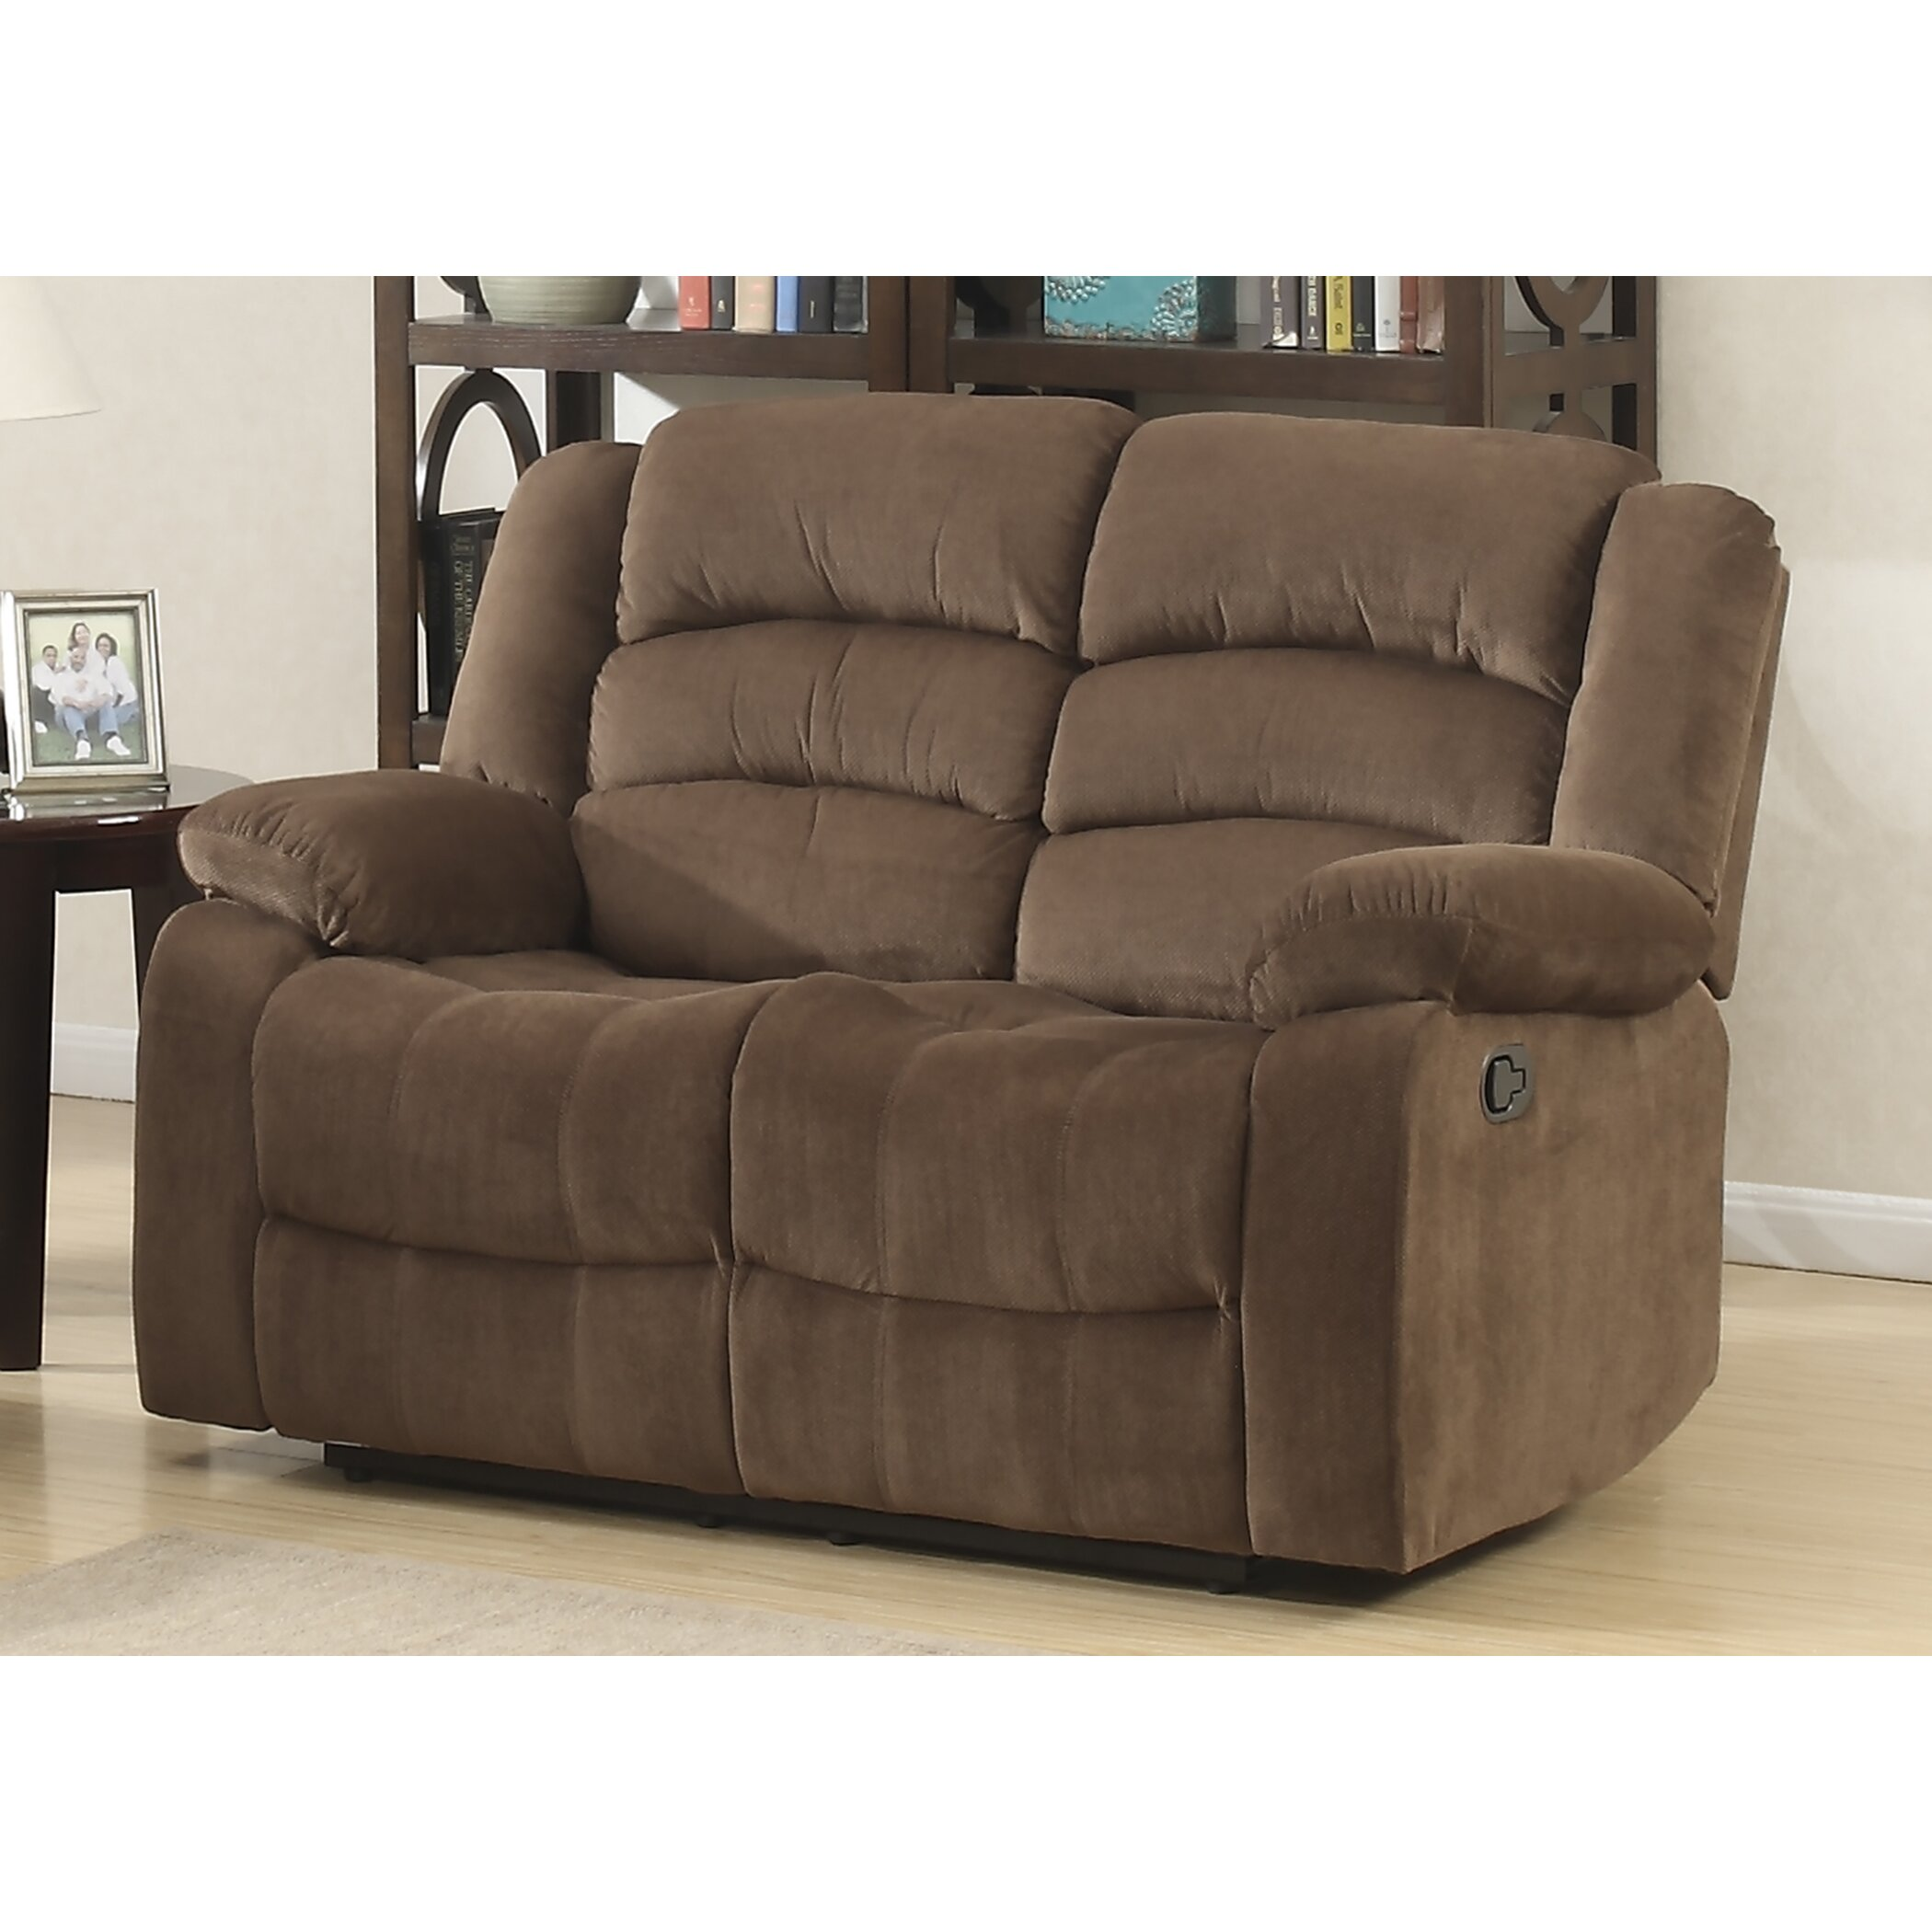 Living Room Sofa And Loveseat Sets Reclining Sofa And Loveseat Set Leather Power Reclining Sofa And